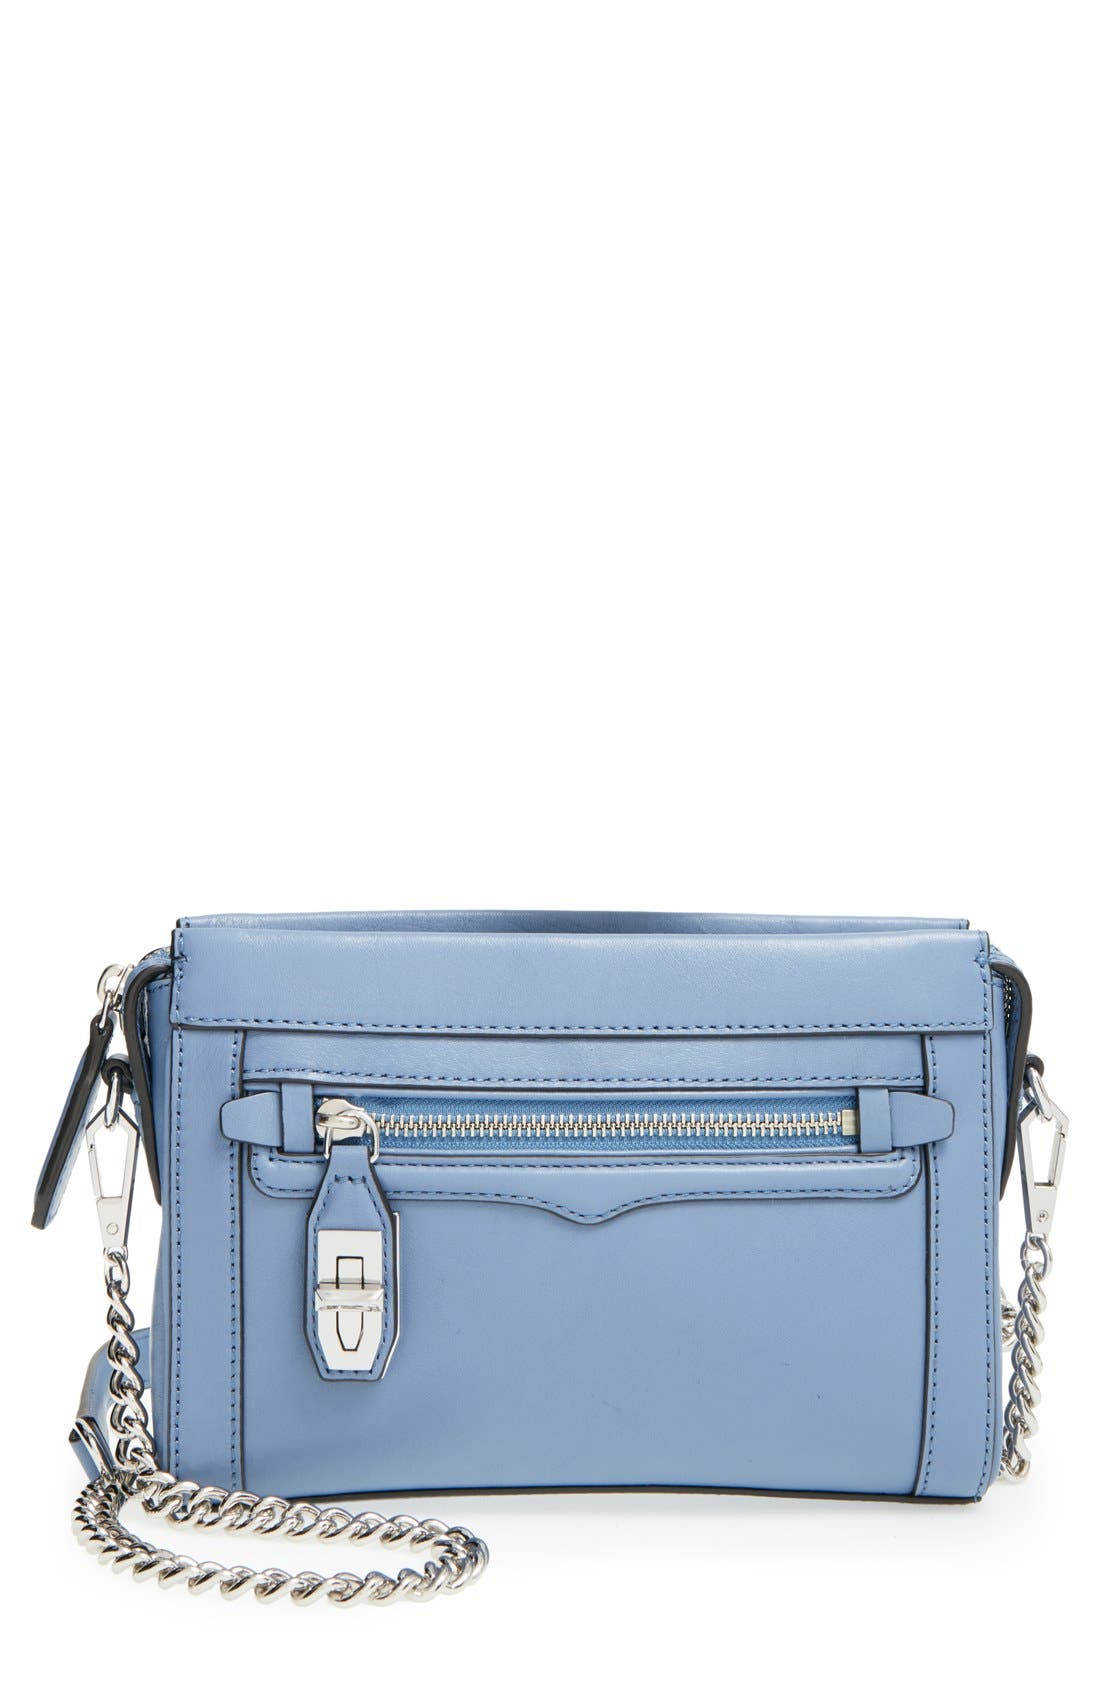 Main Image - Rebecca Minkoff 'Mini Crosby' Crossbody Bag